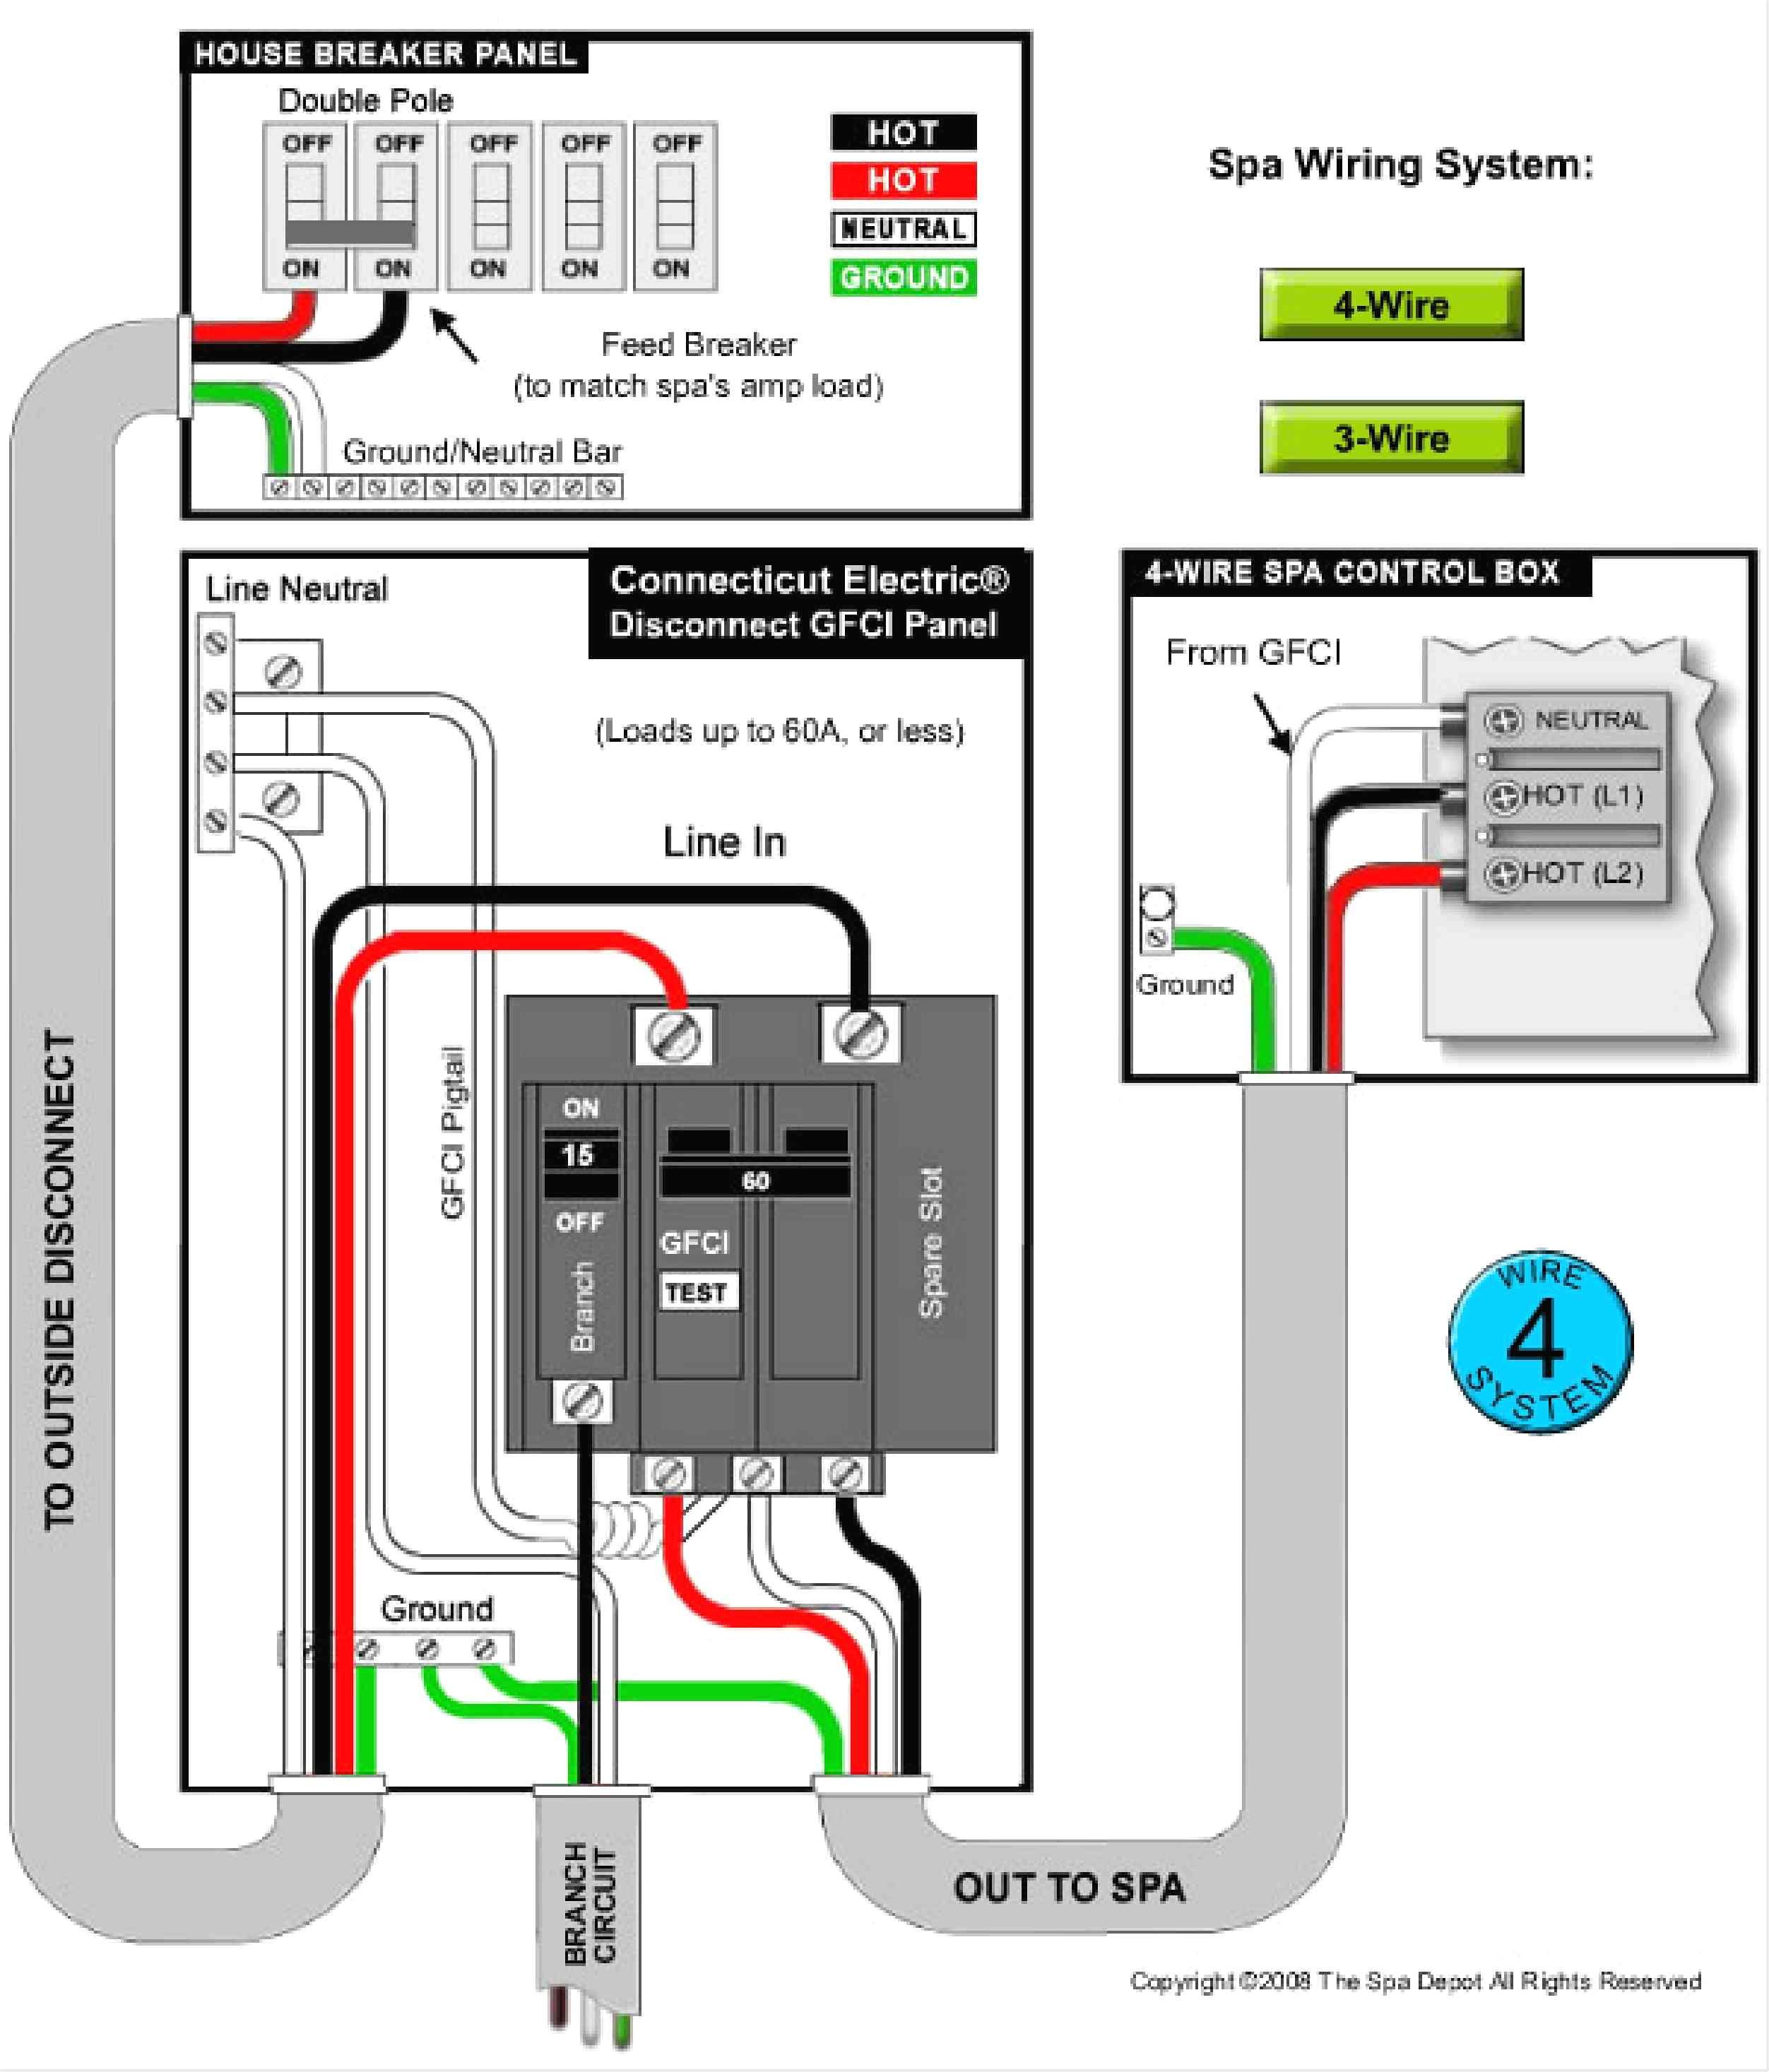 3 pole circuit breaker wiring diagram wiring diagram earth leakage relay refrence 3 pole circuit breaker wiring diagram elegant color code 4q 3 wire breaker diagram largest wiring diagram database \u2022